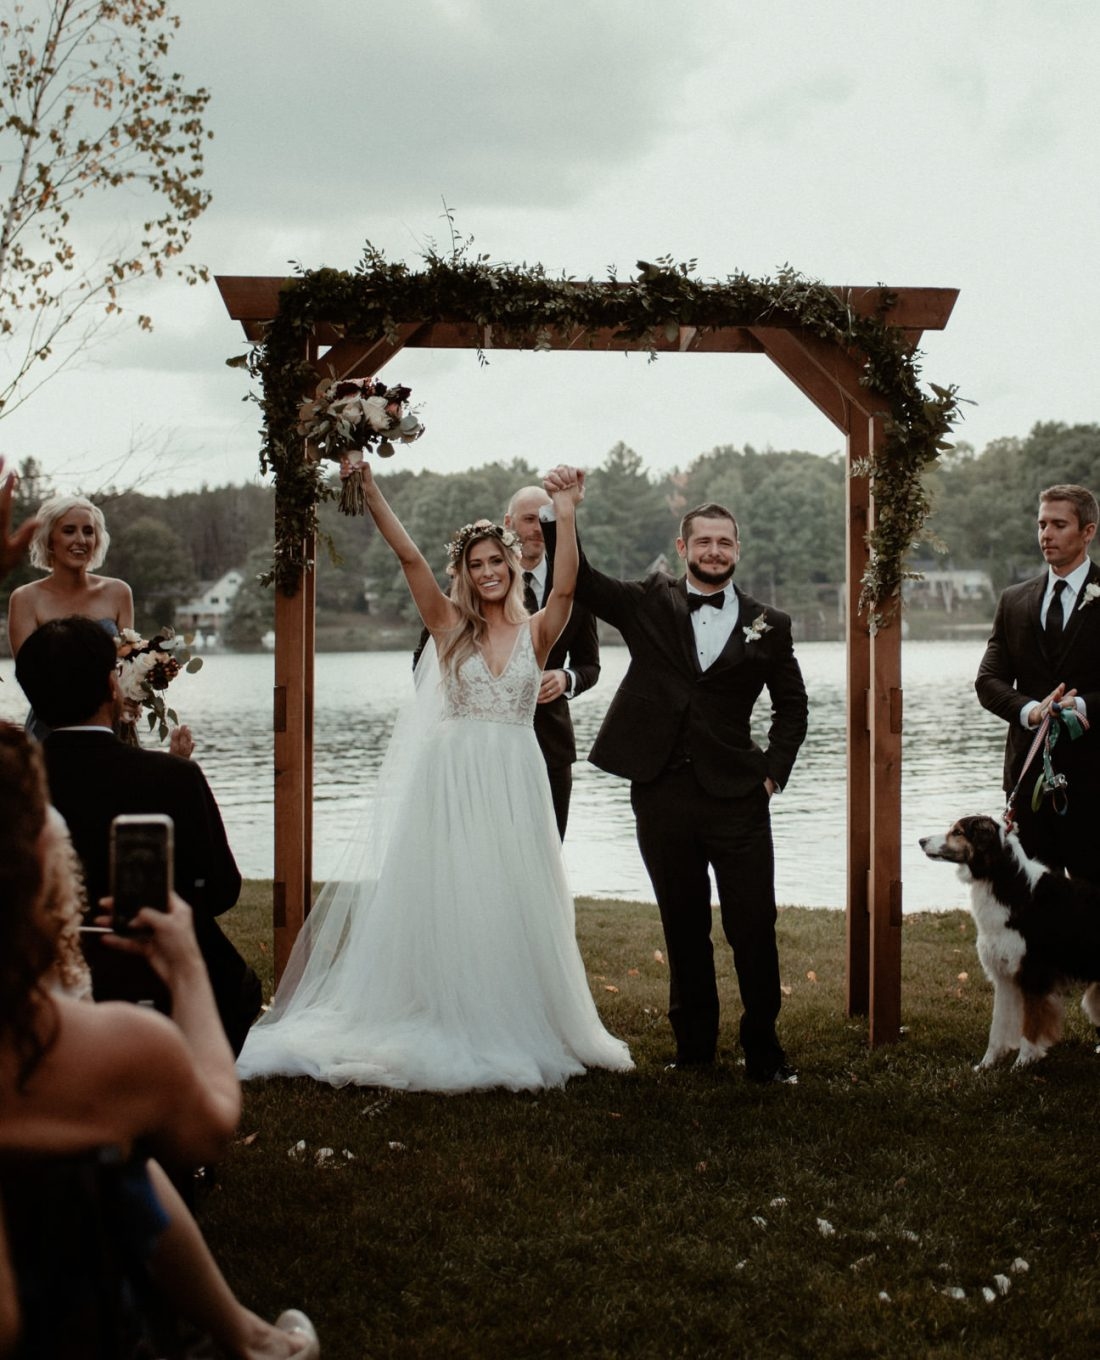 Northern Michigan Wedding at Sojourn Lakeside Resort